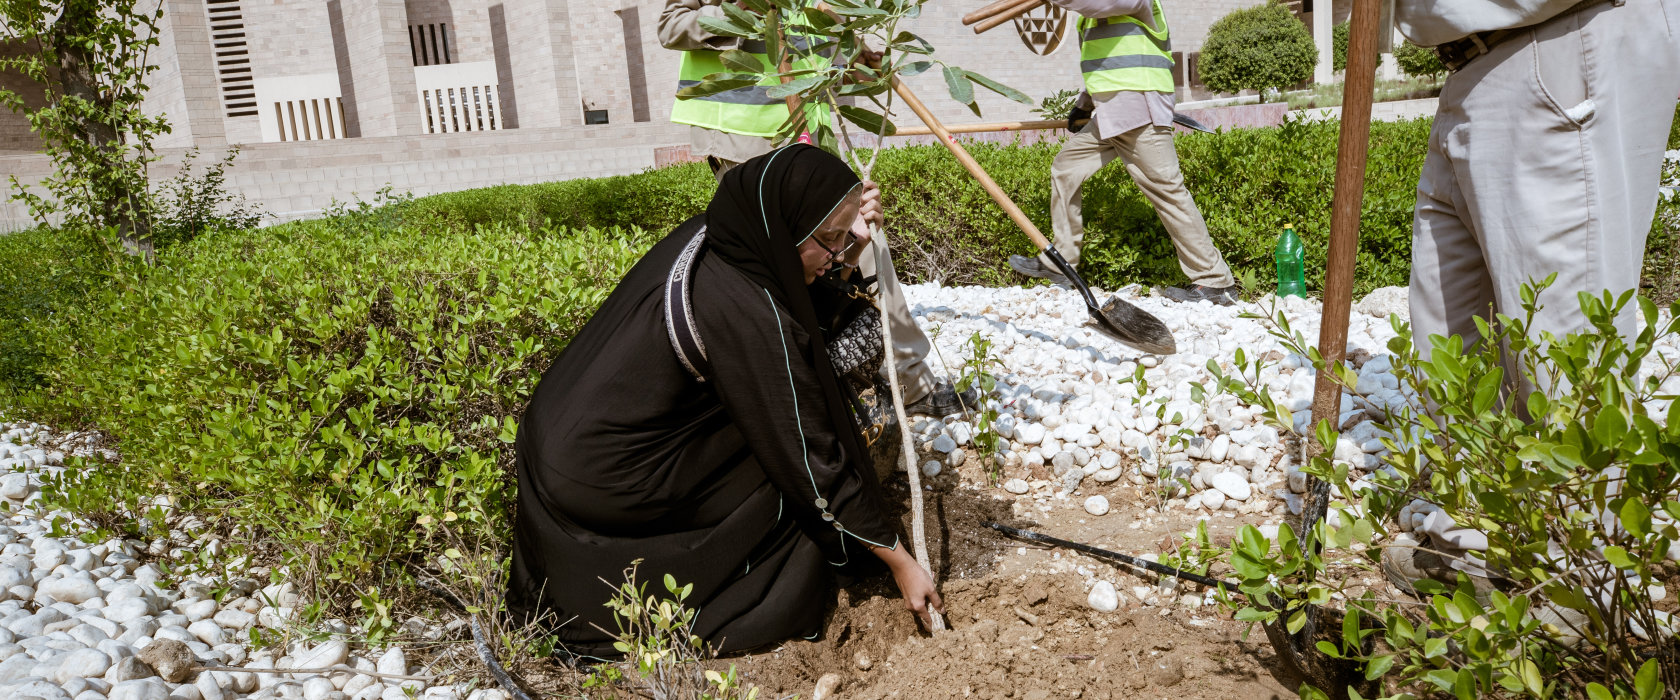 Qatar Sustainability Week: QF initiative aims to create Qatar's first urban forest